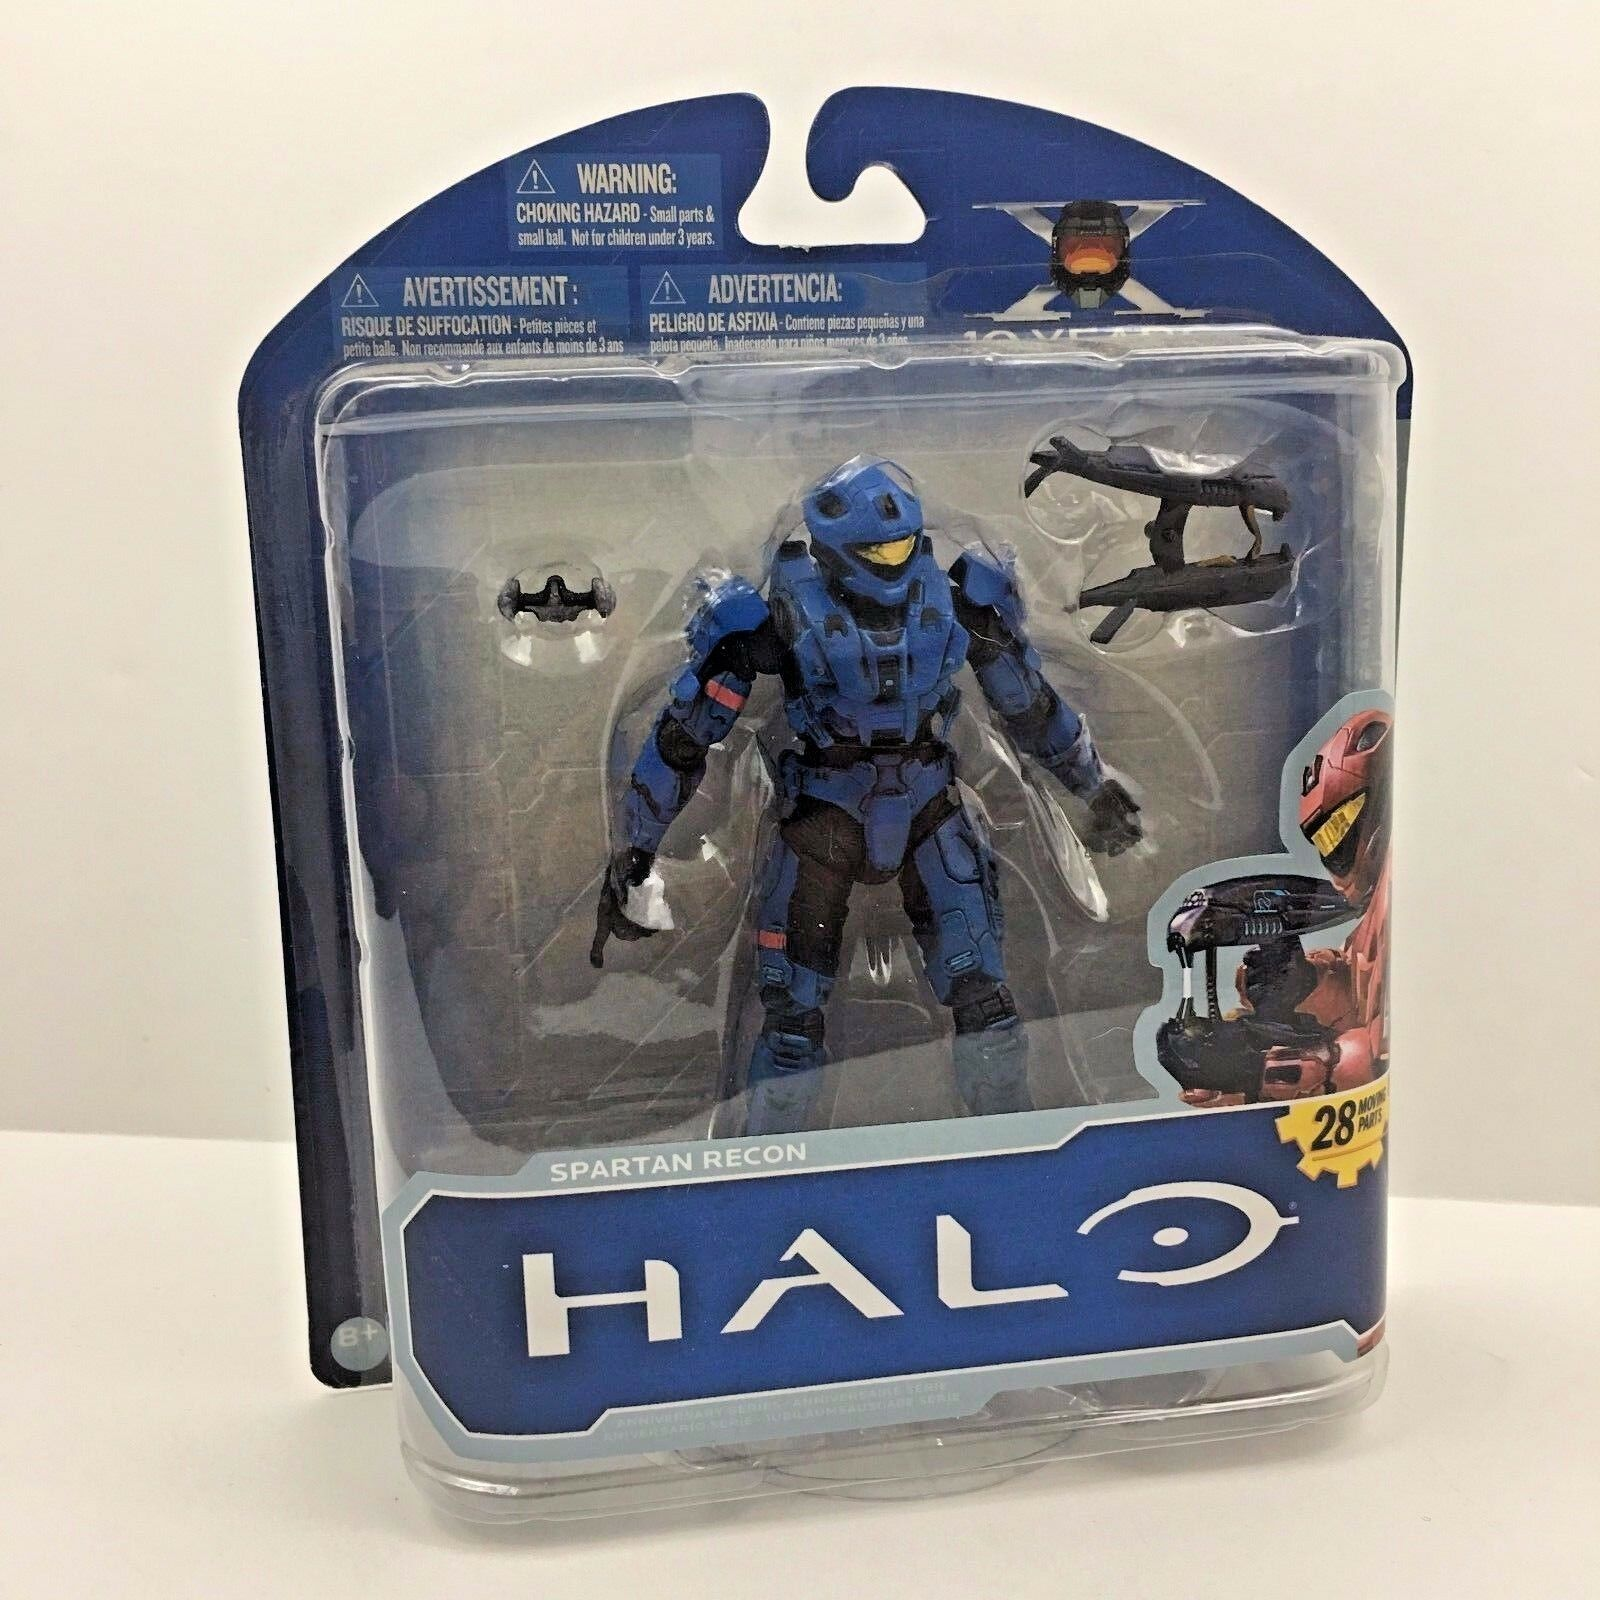 McFarlane Toys HALO bluee Spartan Recon 10th Anniversary Series Action Figure NEW